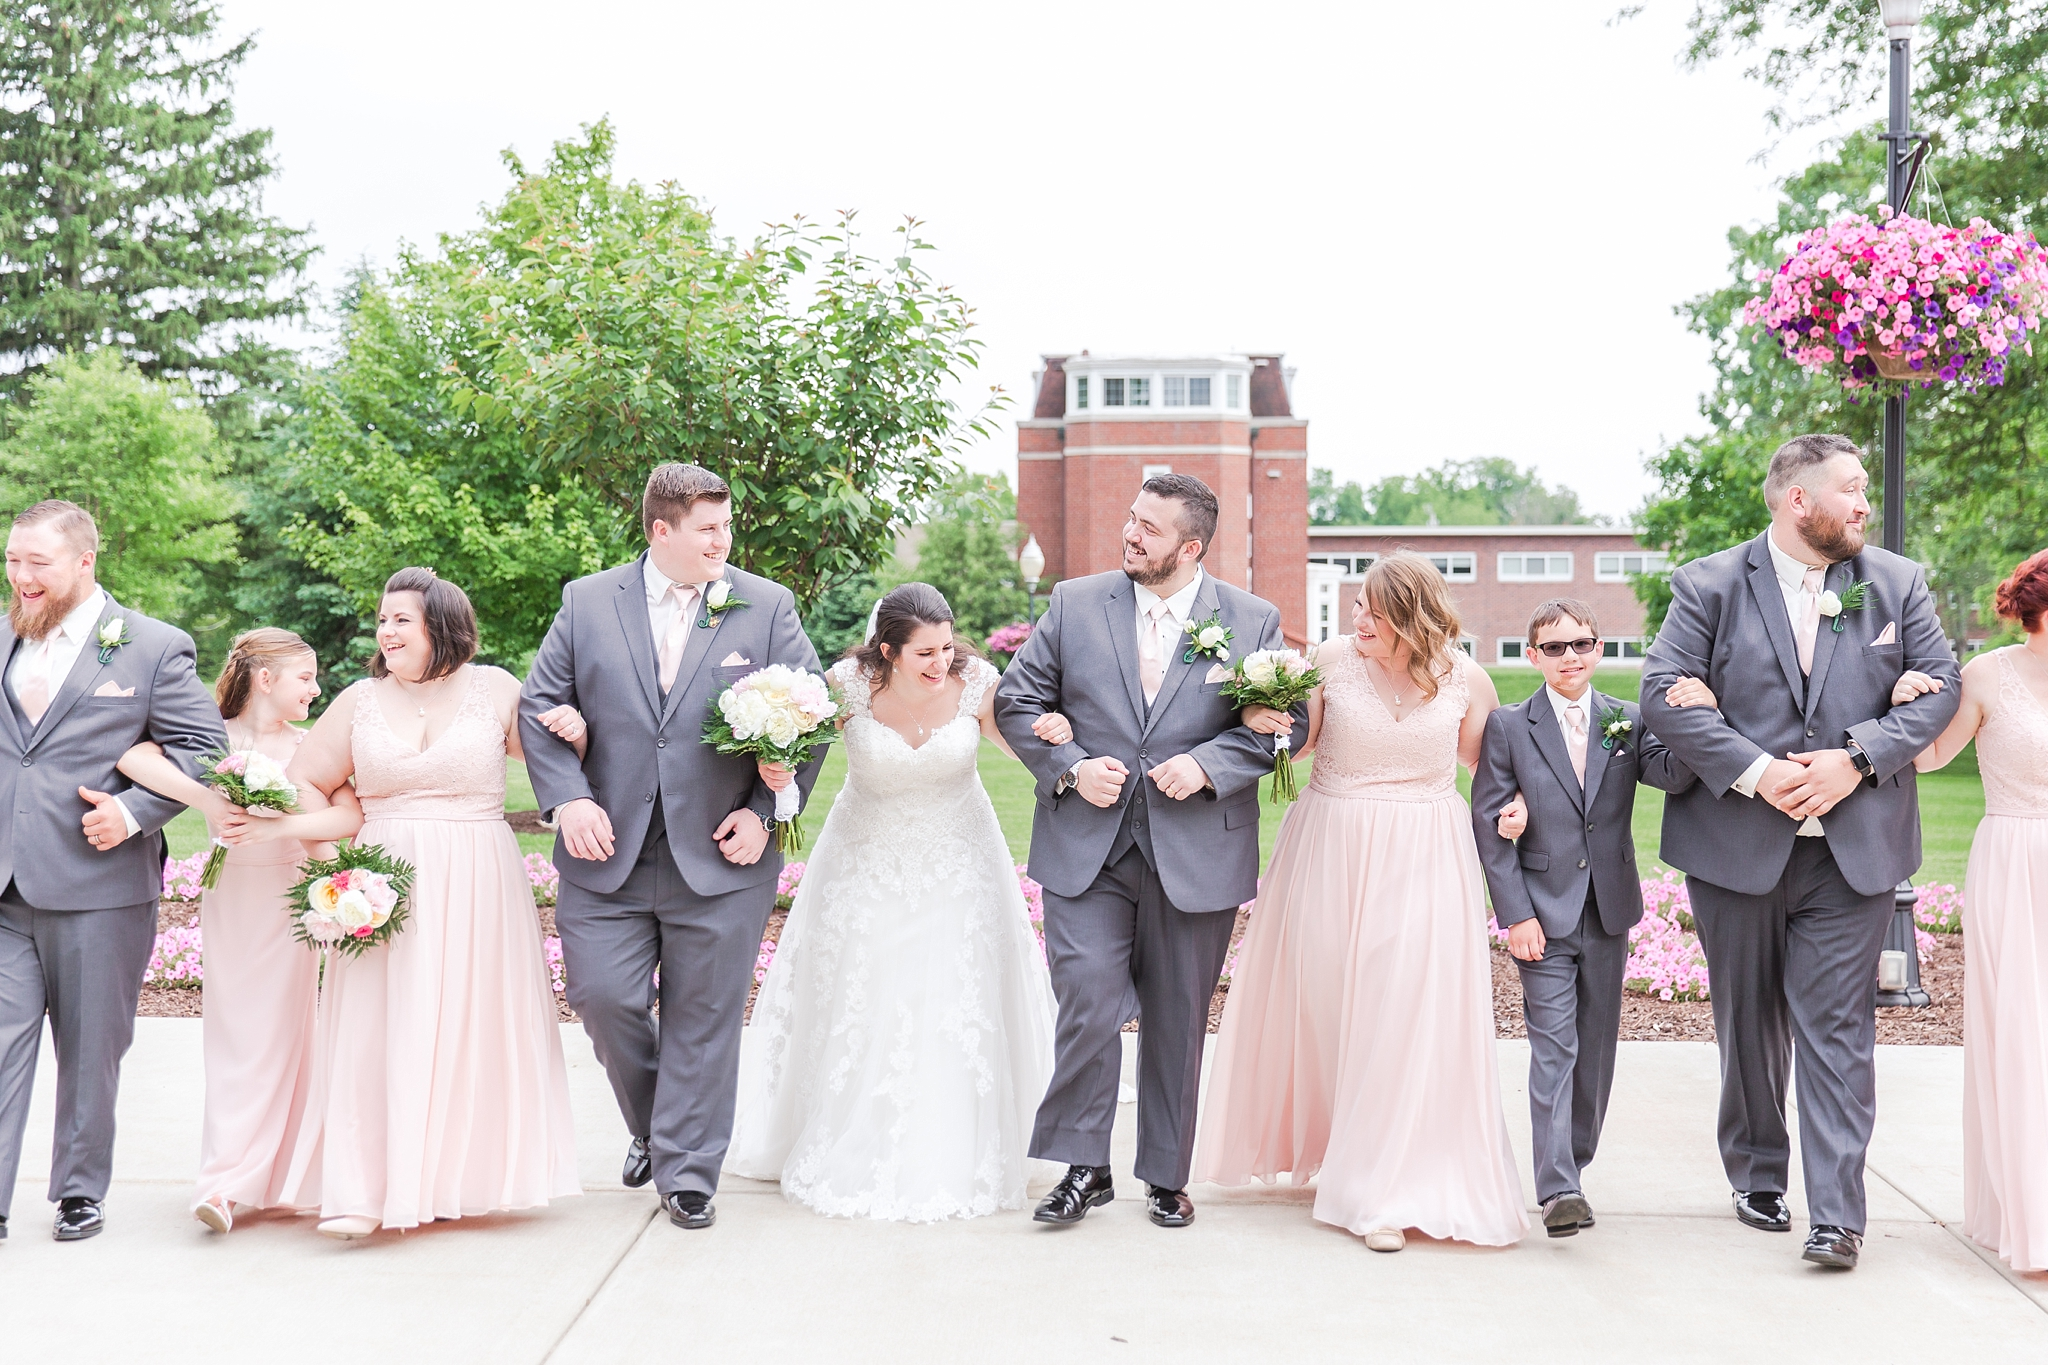 emotional-laid-back-romantic-wedding-photos-at-adrian-college-herrick-chapel-in-adrian-michigan-by-courtney-carolyn-photography_0041.jpg